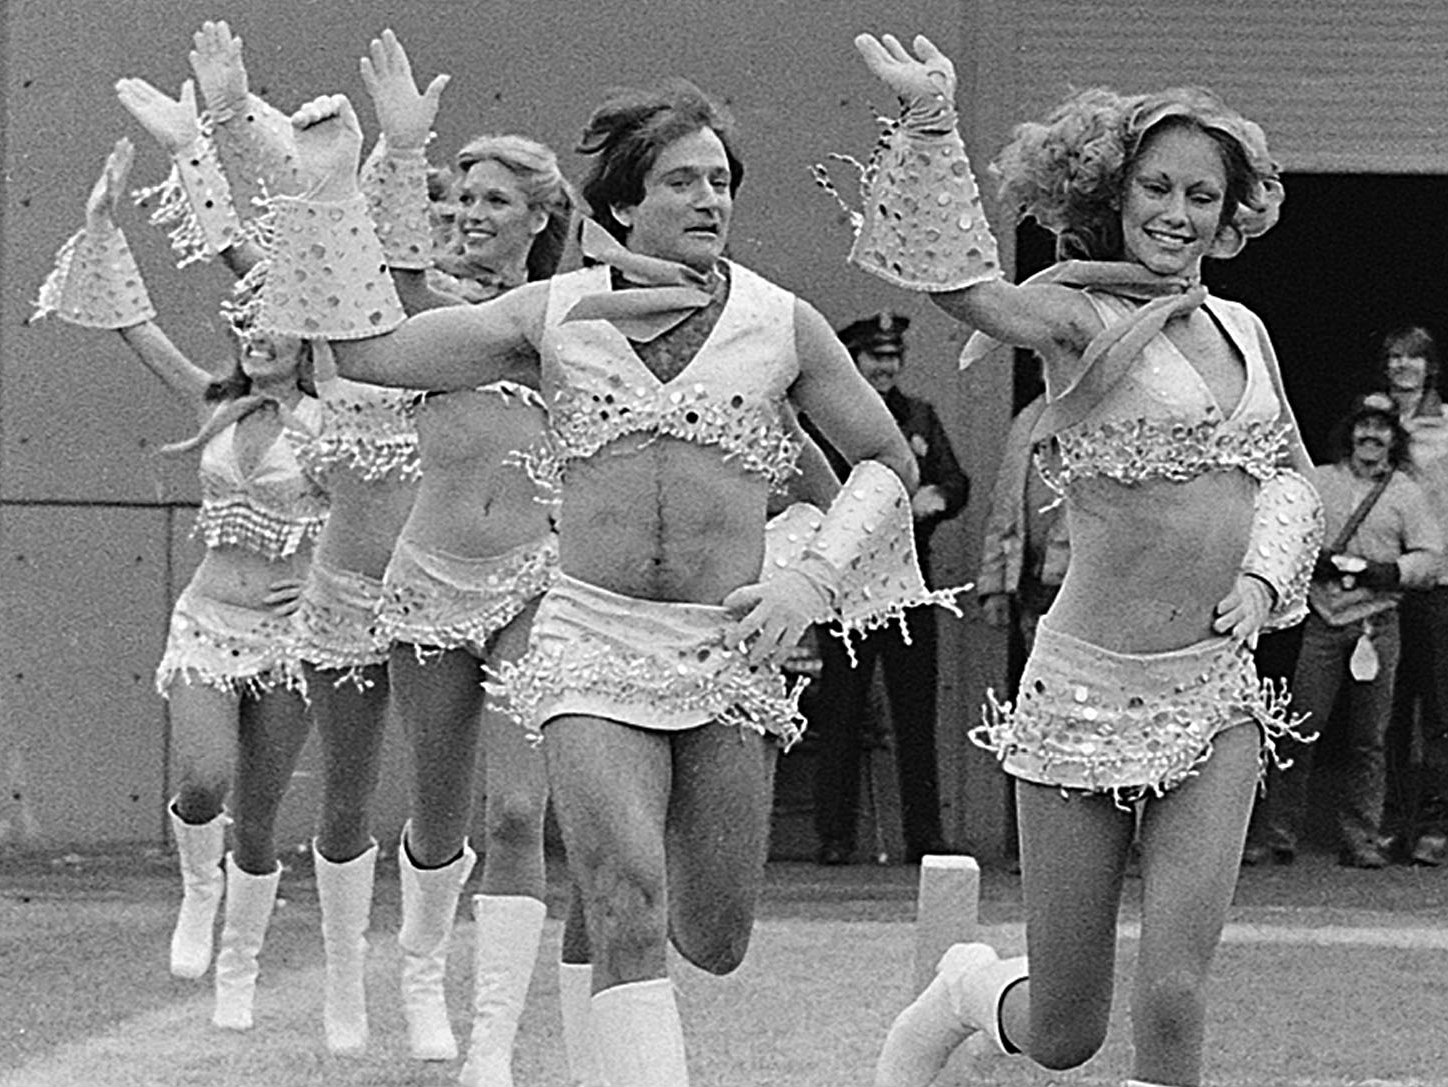 "<p>This Nov. 12, 1979 photo shows actor-comedian Robin Williams, third from right, dressed as a cheerleader with the Broncos' Pony Express cheerleaders during the filming of an episode of ""Mork & Mindy,"" in Denver. </p>"